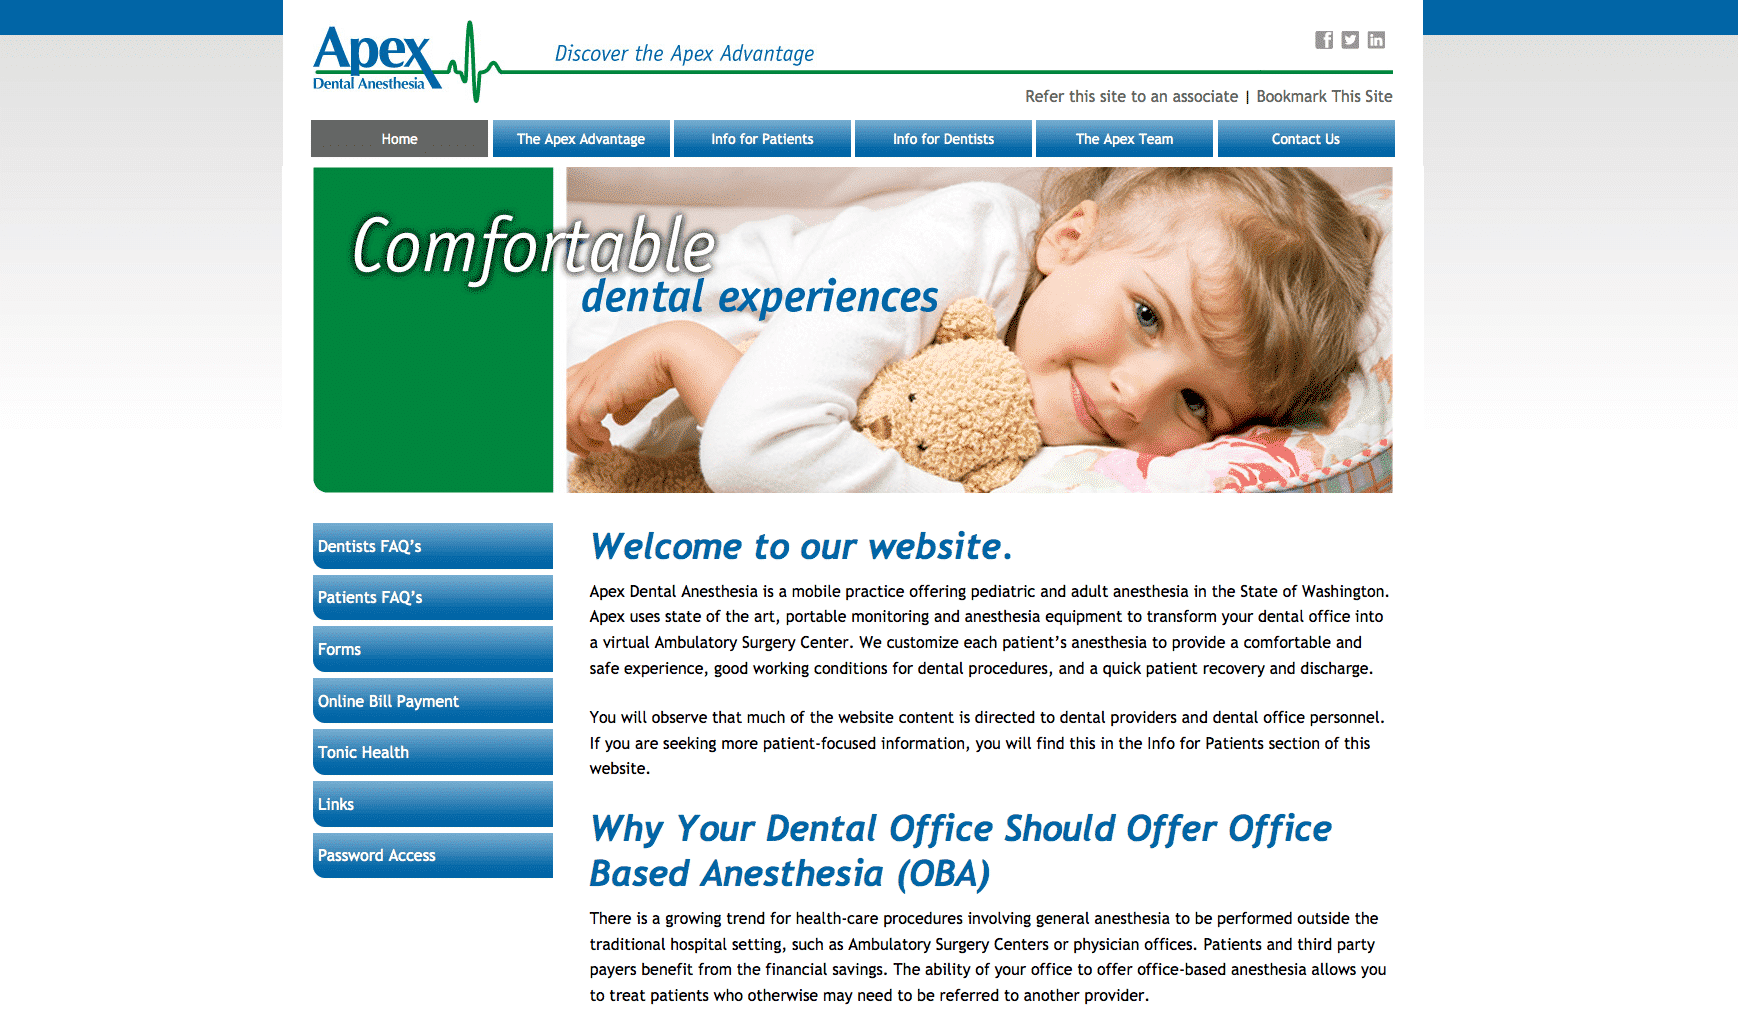 Apex Dental Anesthesia